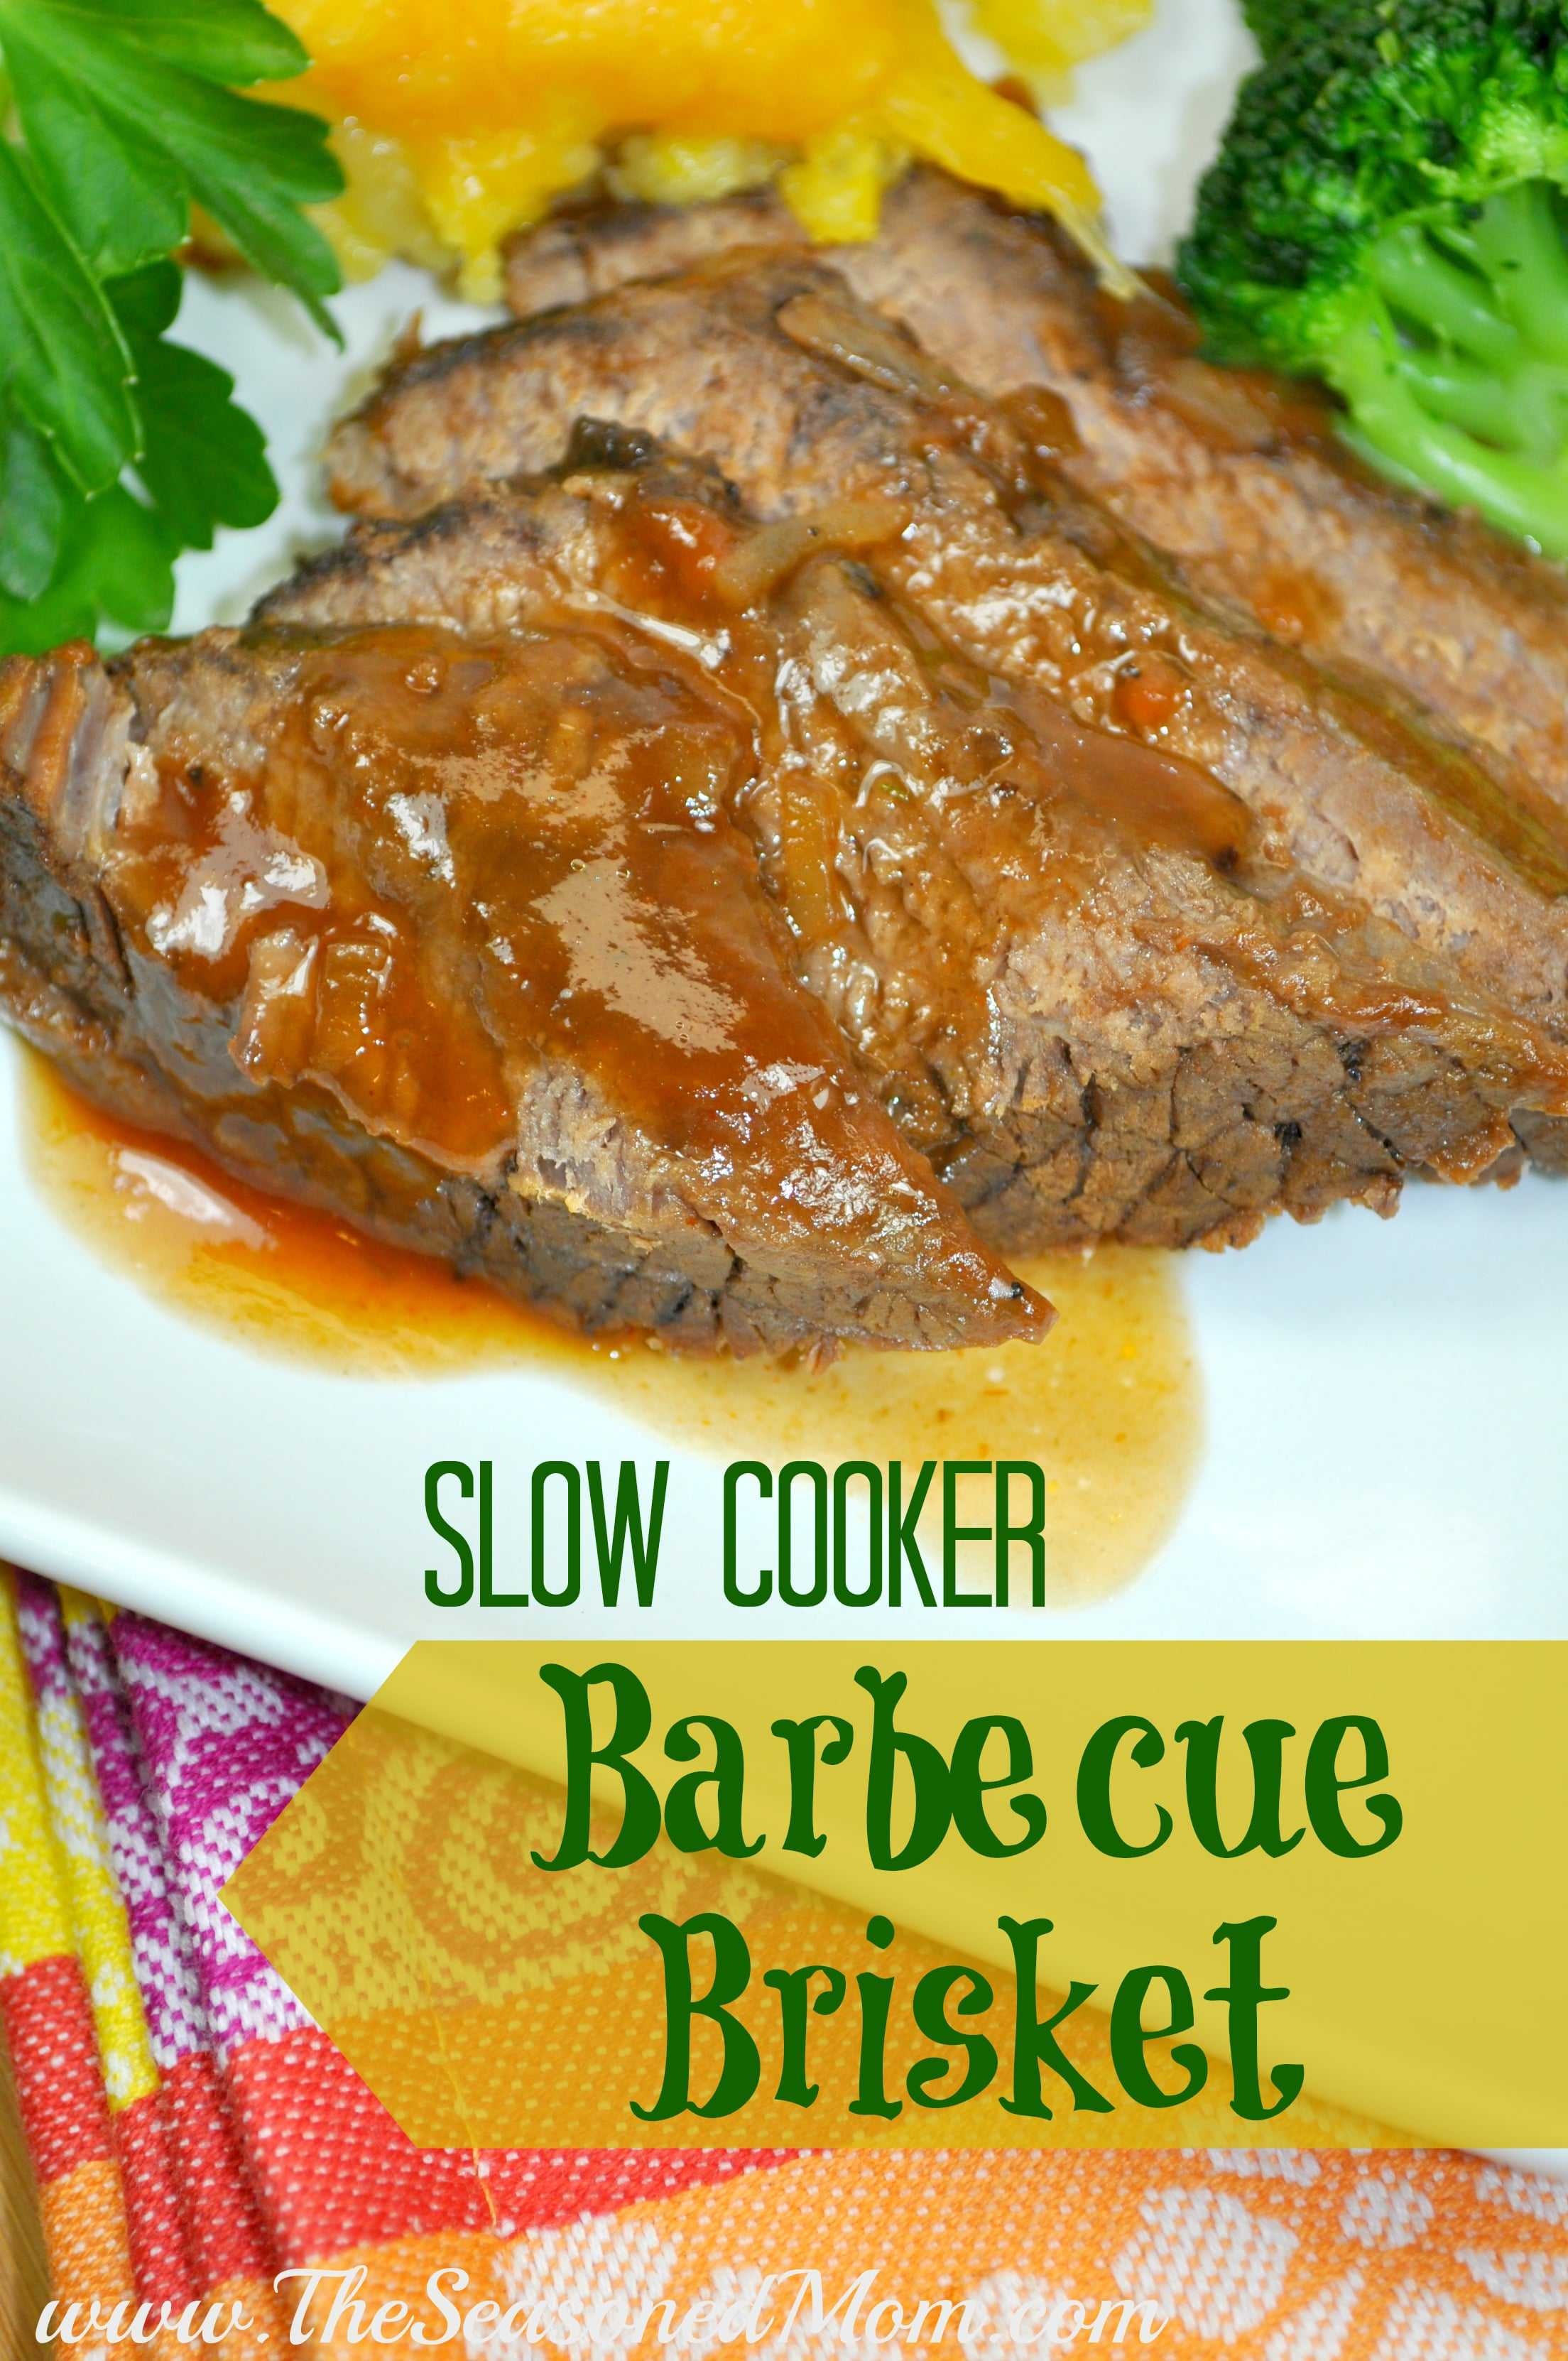 Slow Cooker Barbecue Brisket - The Seasoned Mom